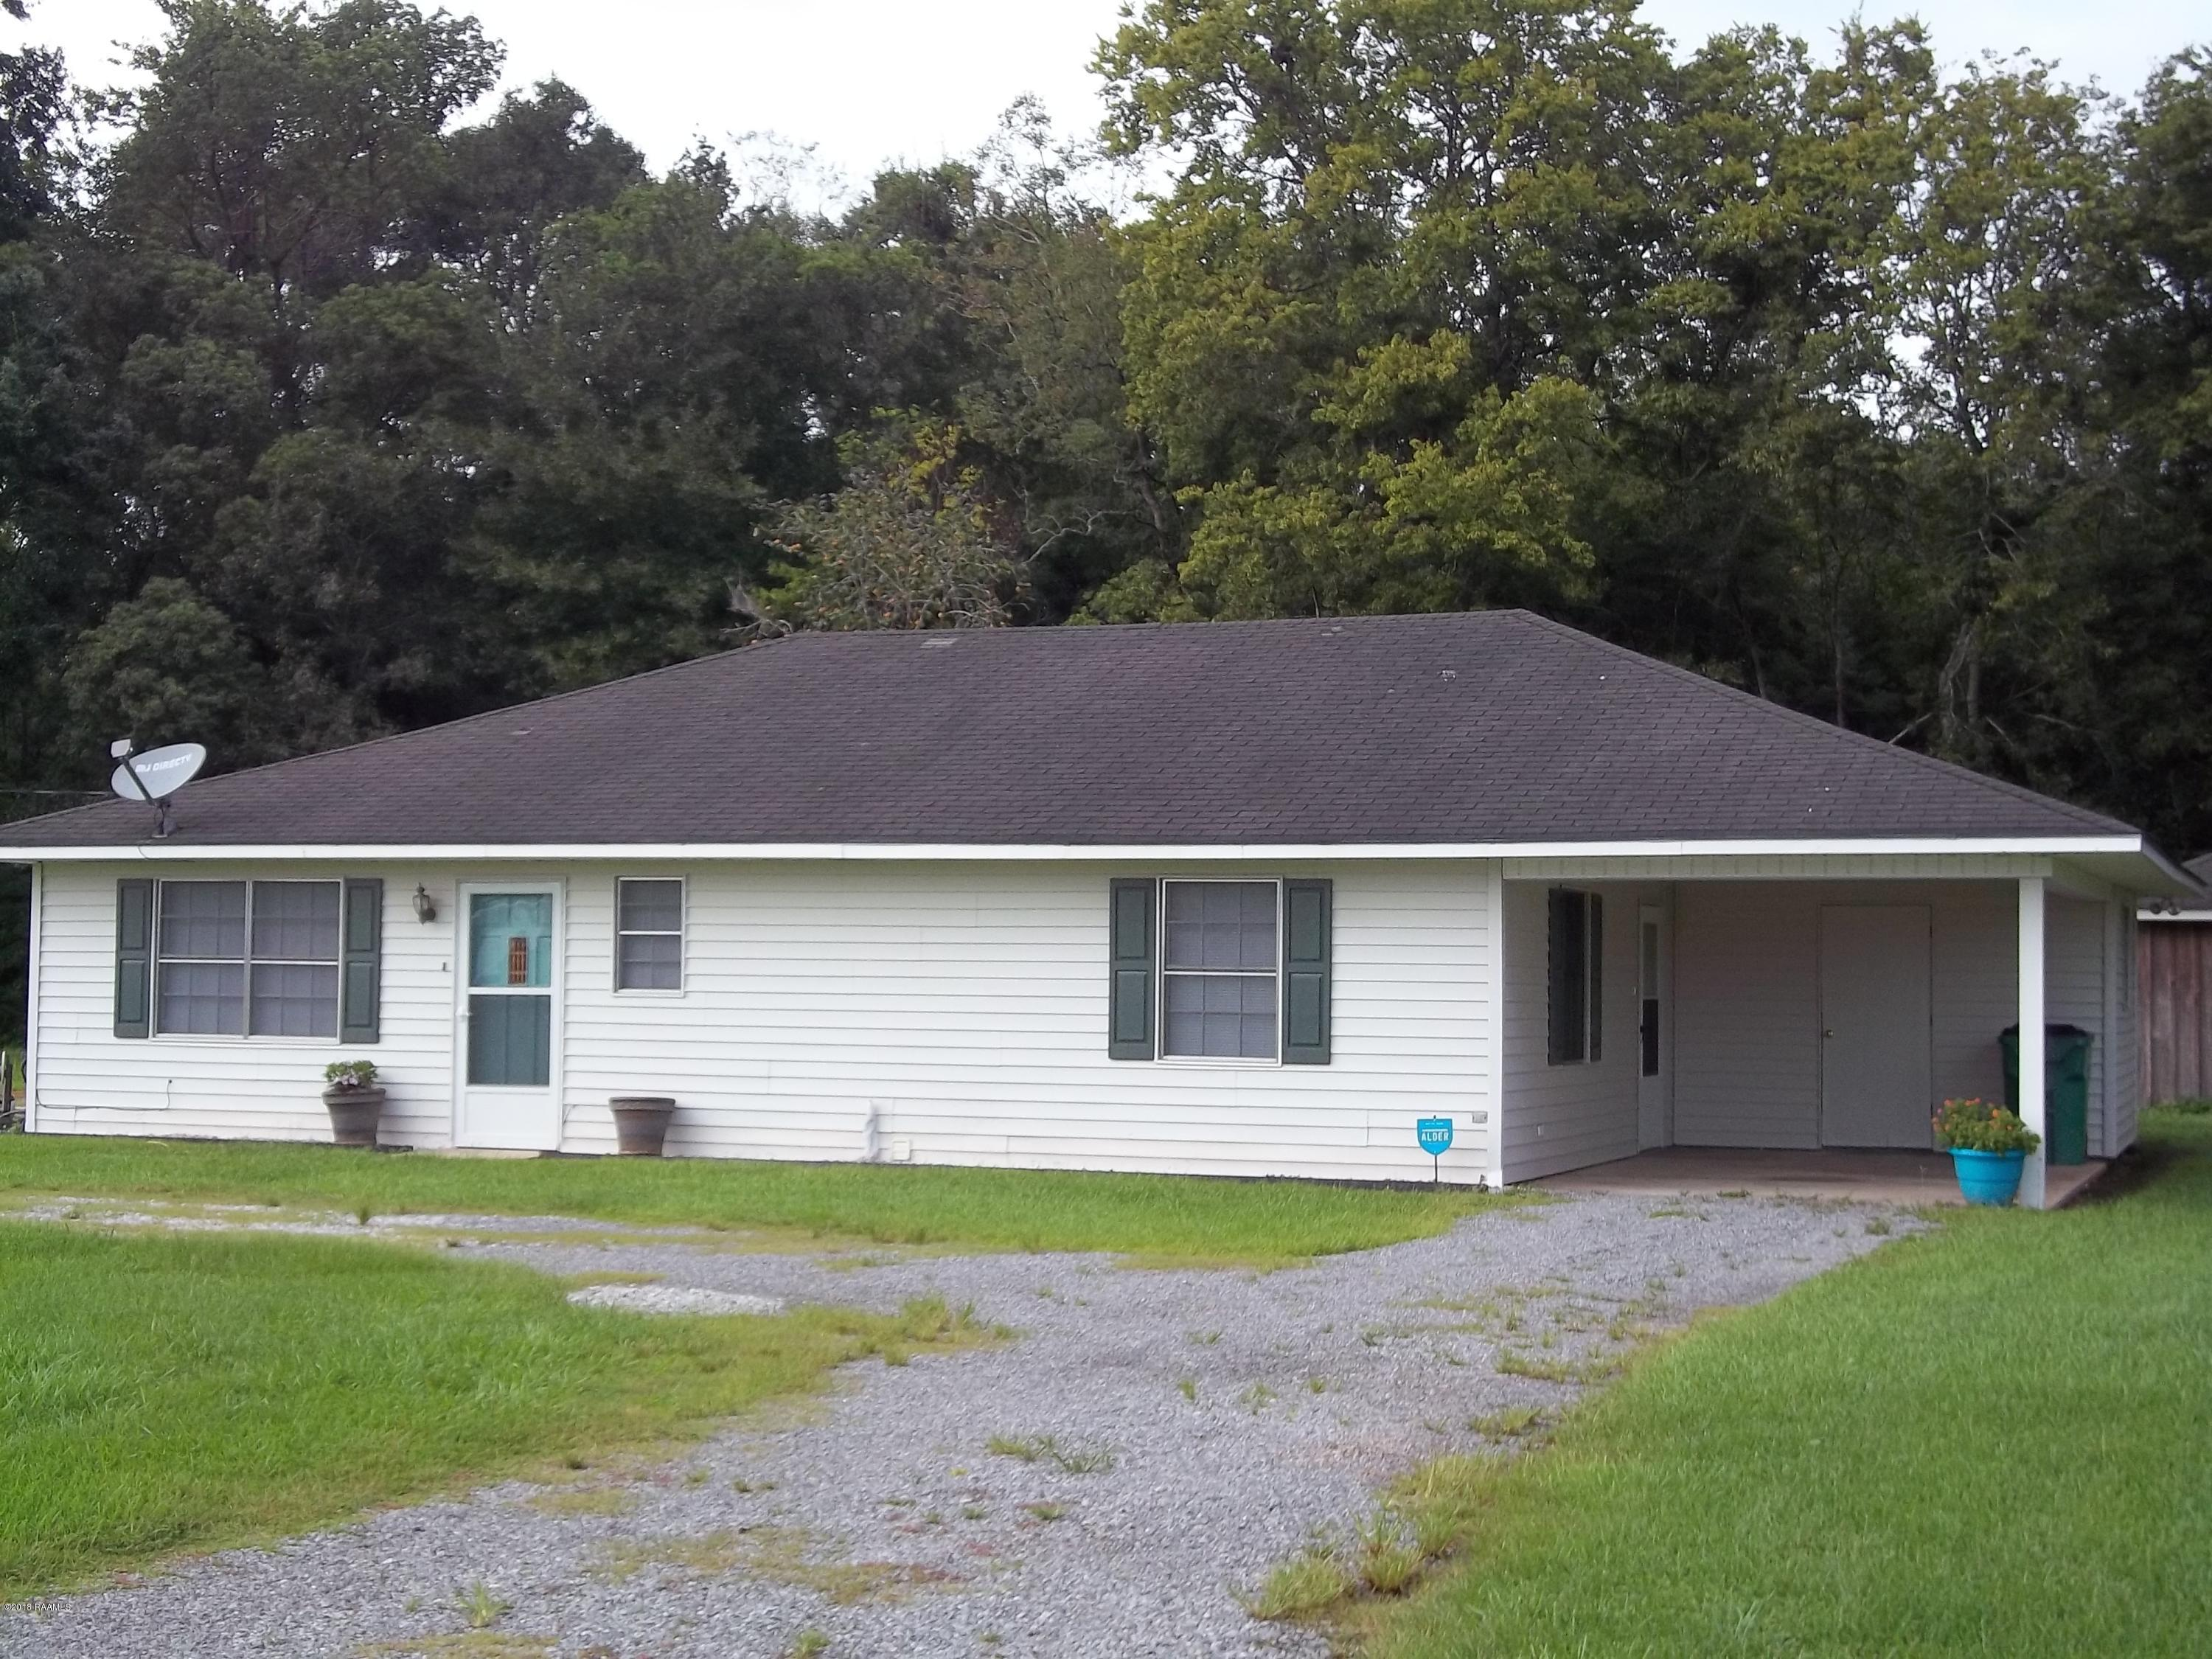 1205 Meaux Lane, Abbeville, LA 70510 Photo #2